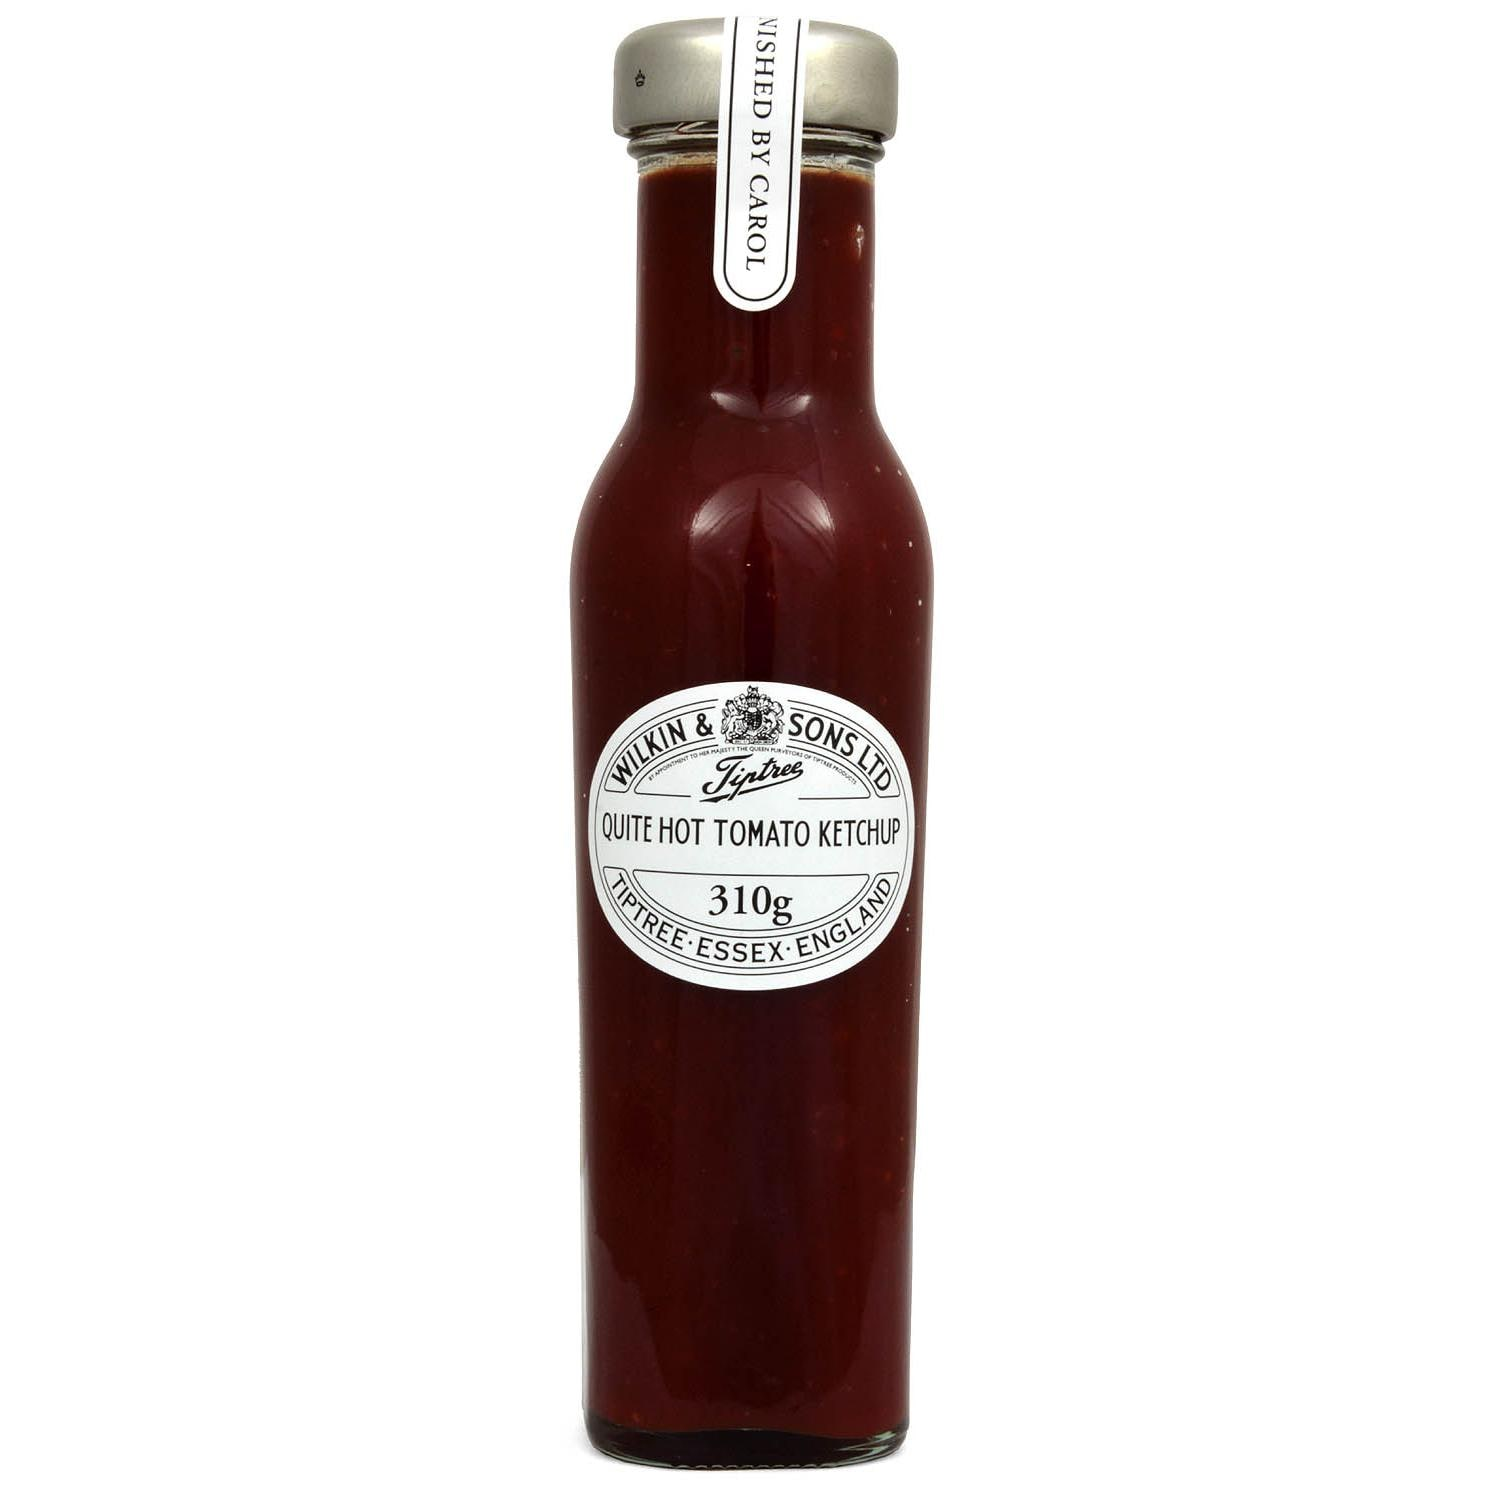 Wilkin & Sons Tiptree Quite Hot Tomato Ketchup - Tomatenketchup